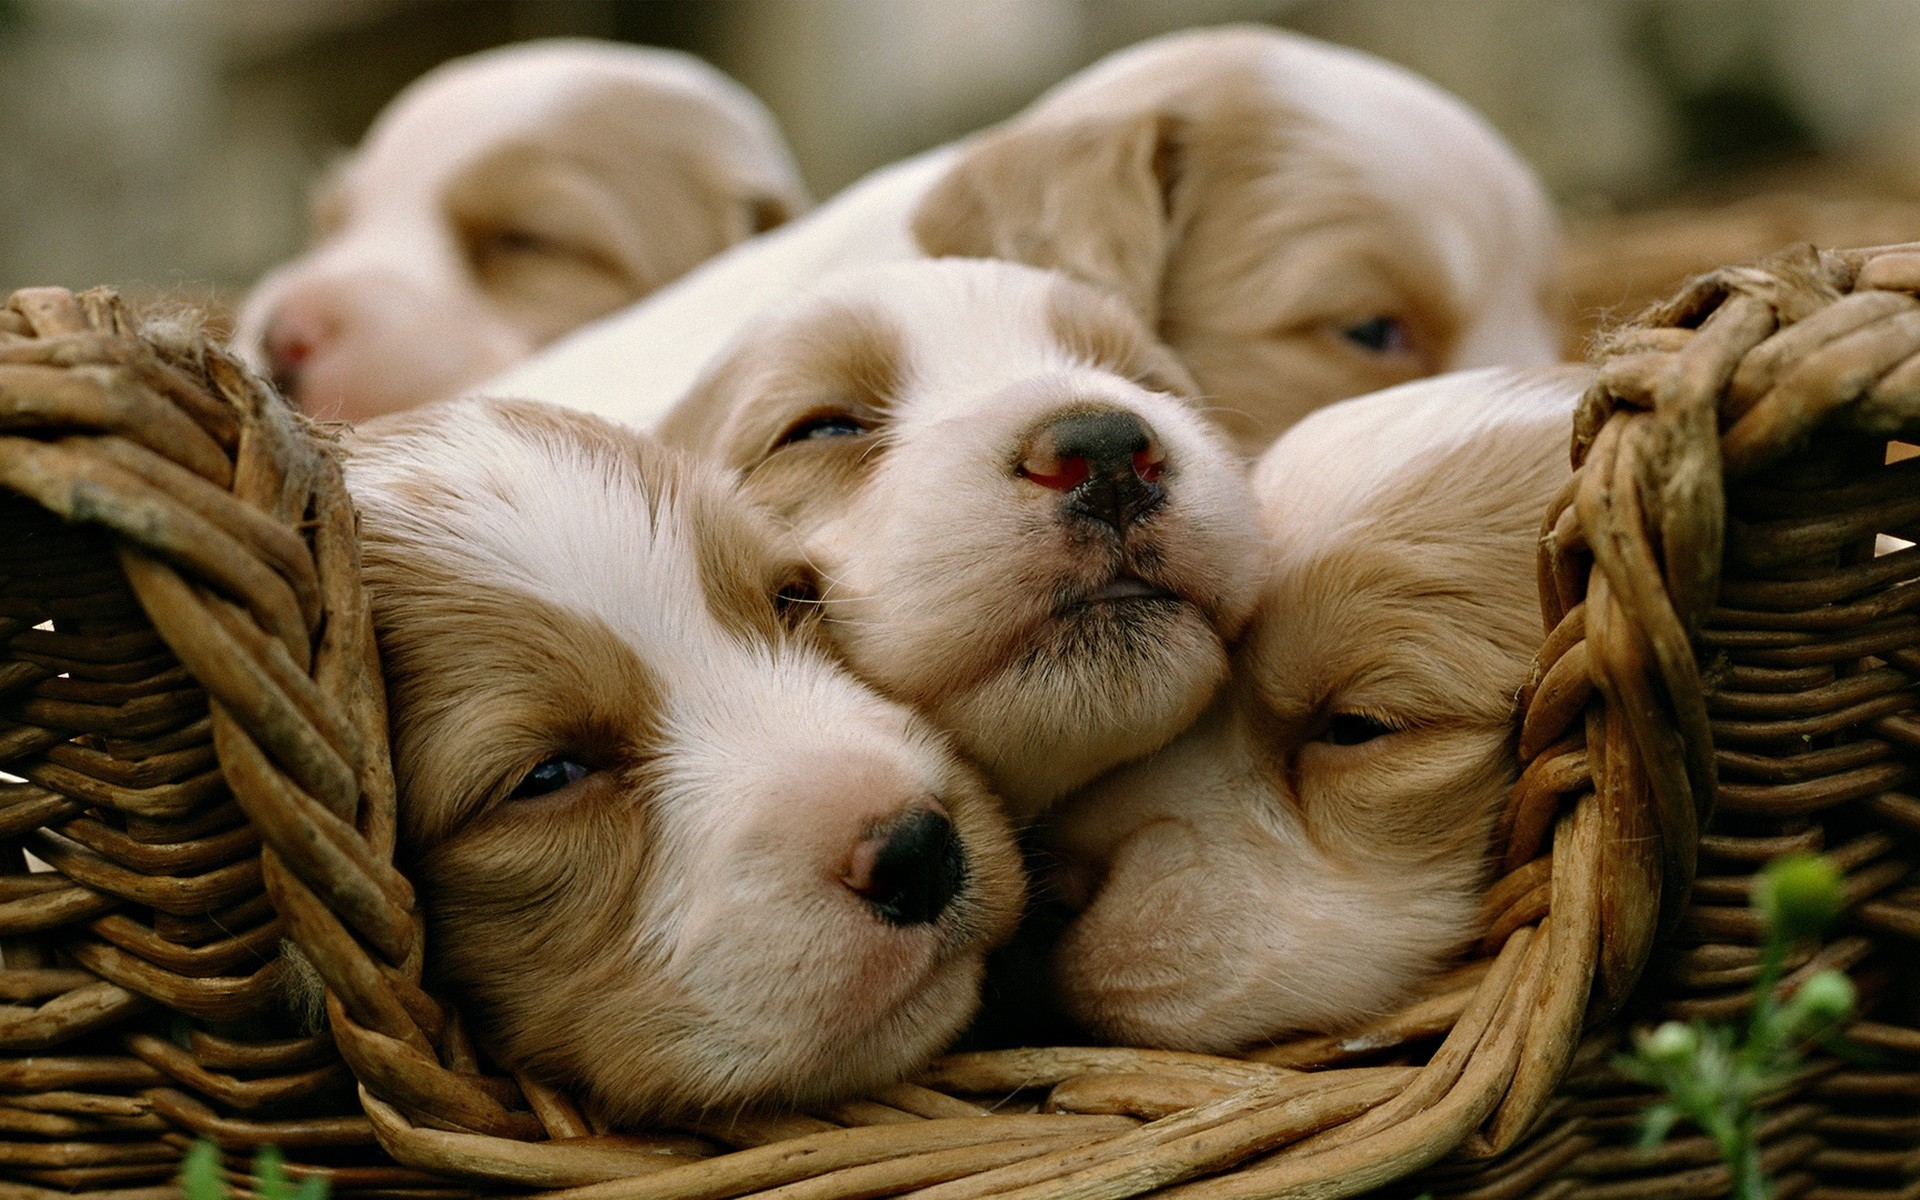 Together Is Better – Puppies Wallpaper 1920x1200 px